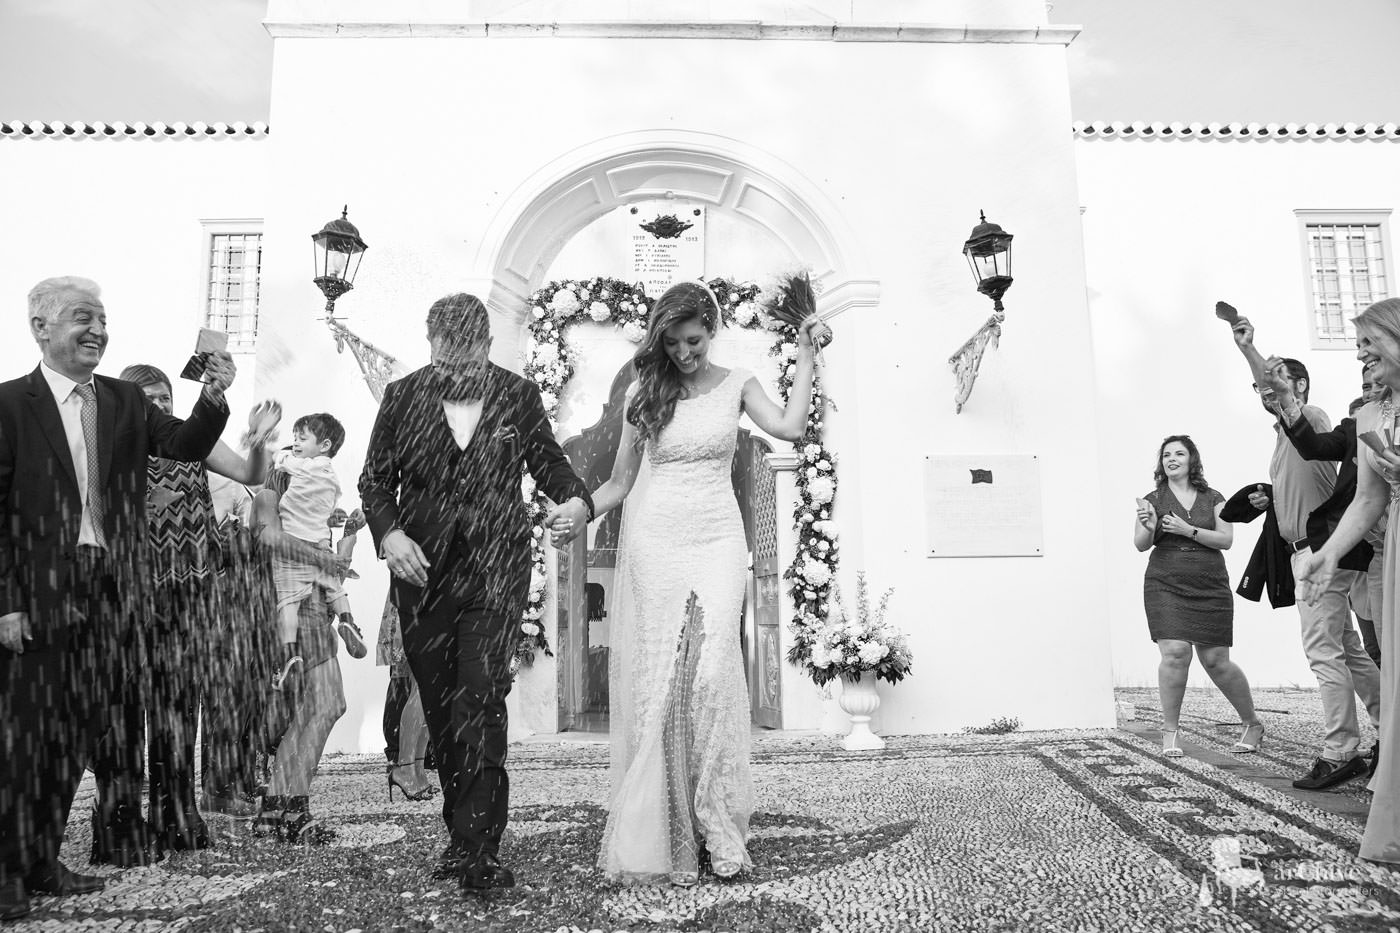 6579-wedding-photographer-spetses-greece.jpg